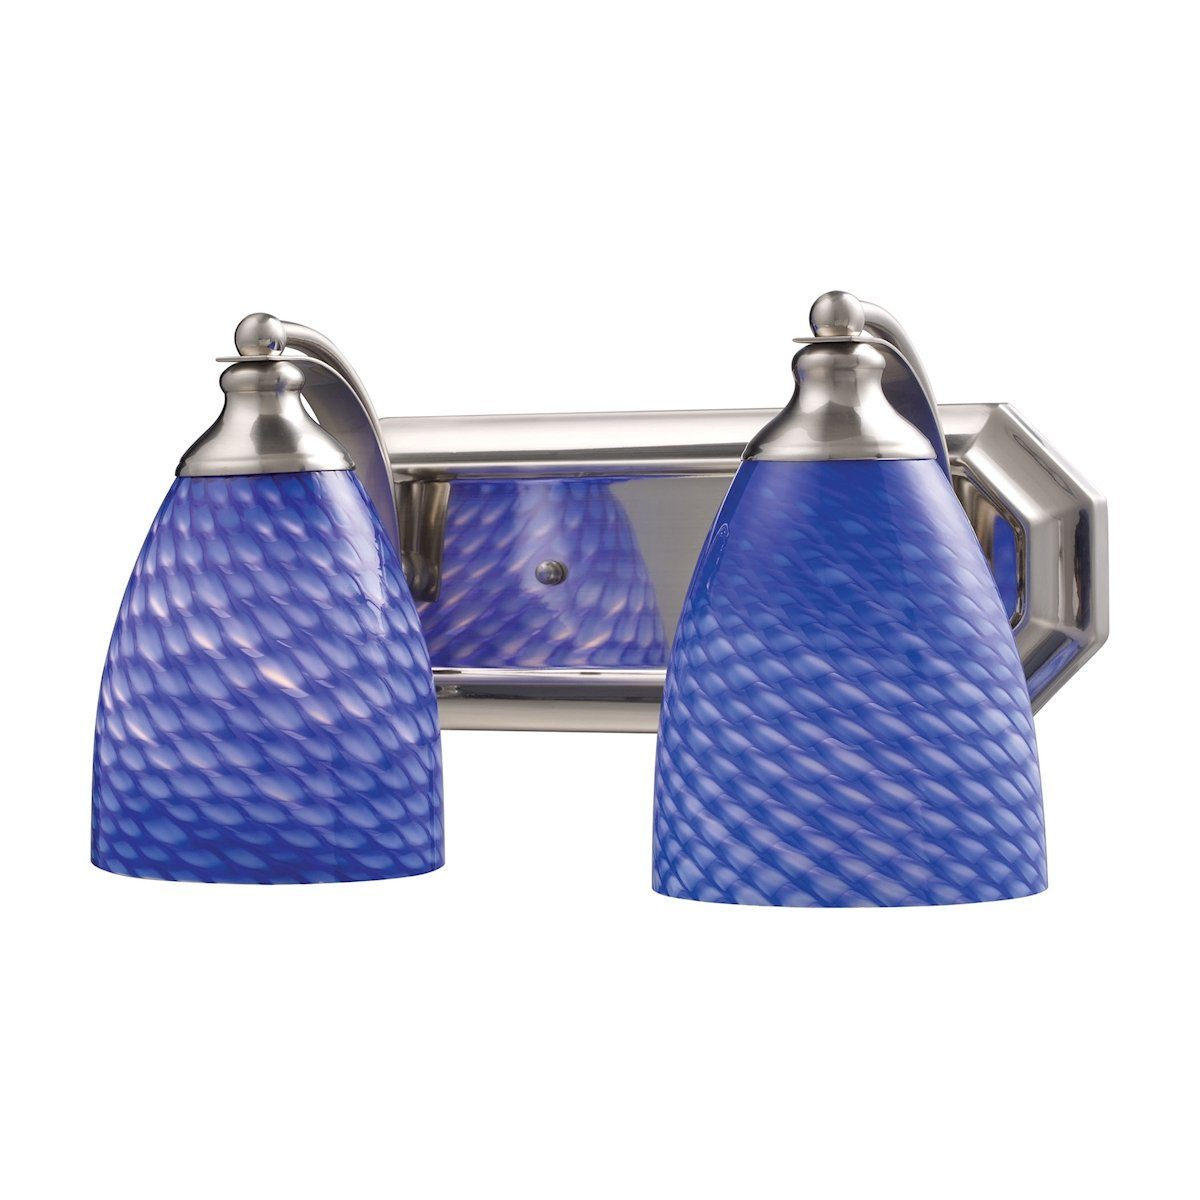 Bath And Spa 2 Light Vanity In Satin Nickel And Sapphire Glass Wall Elk Lighting